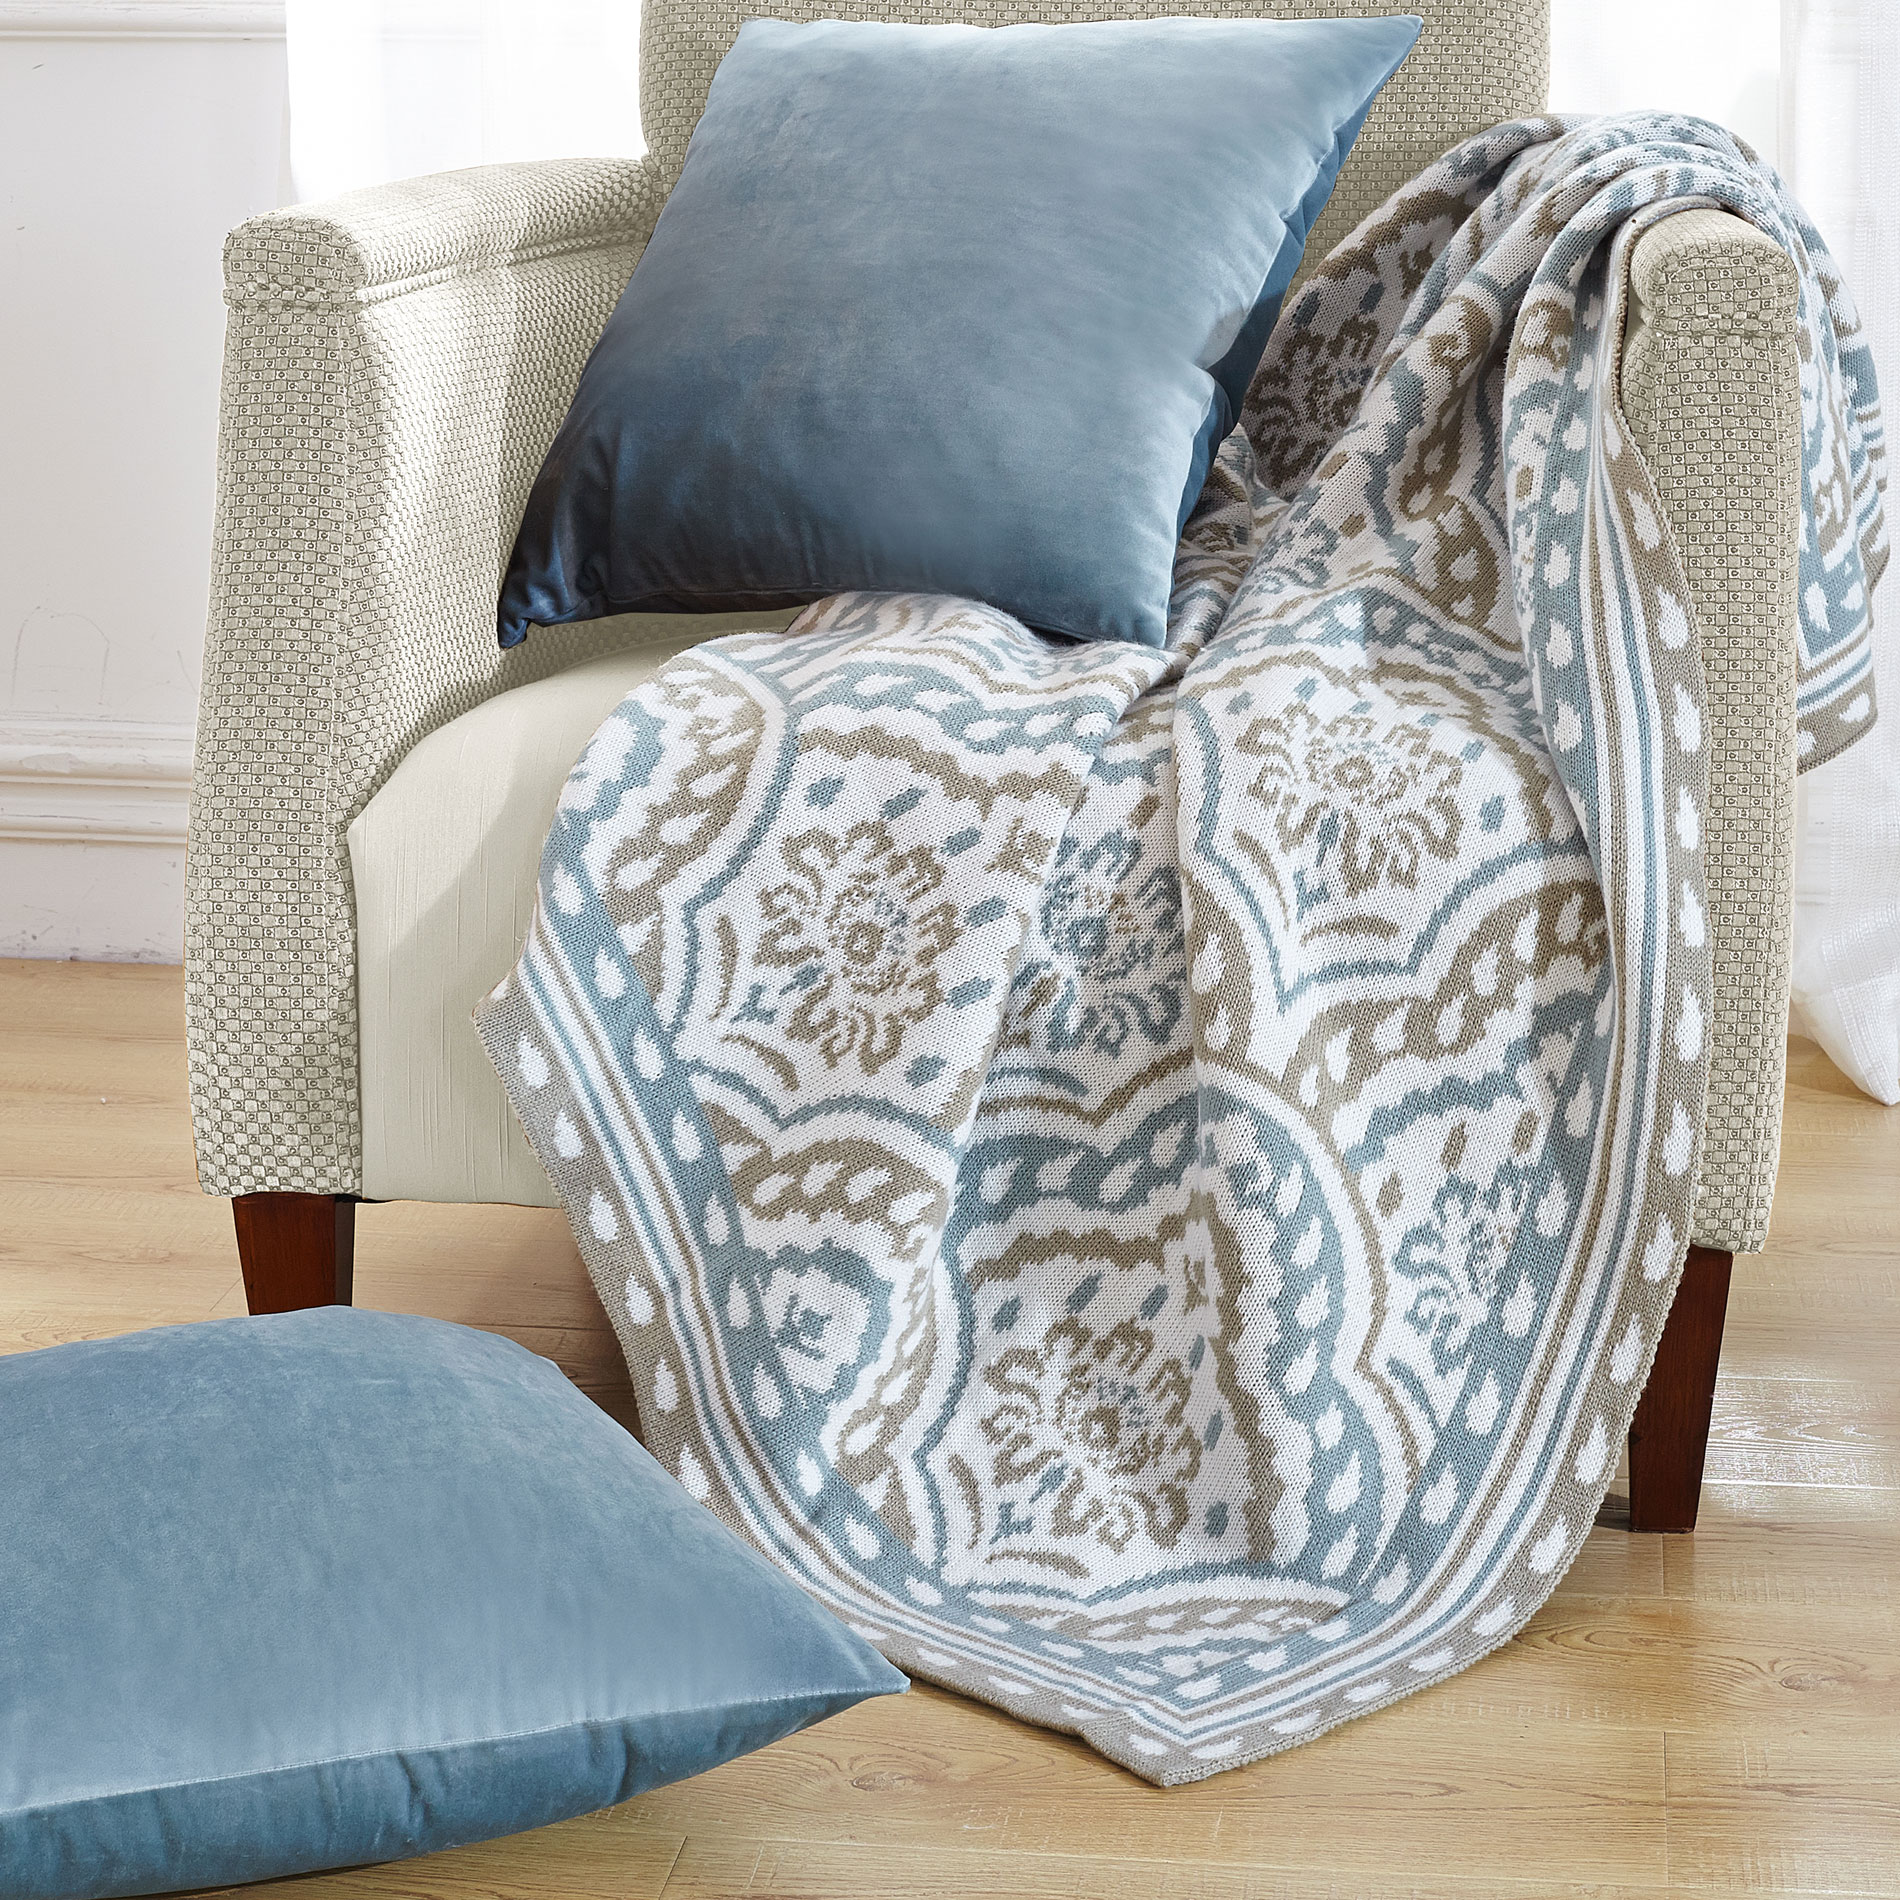 3 Piece Throw Blanket and Throw Pillow Shell Sets - Blissful Comforts